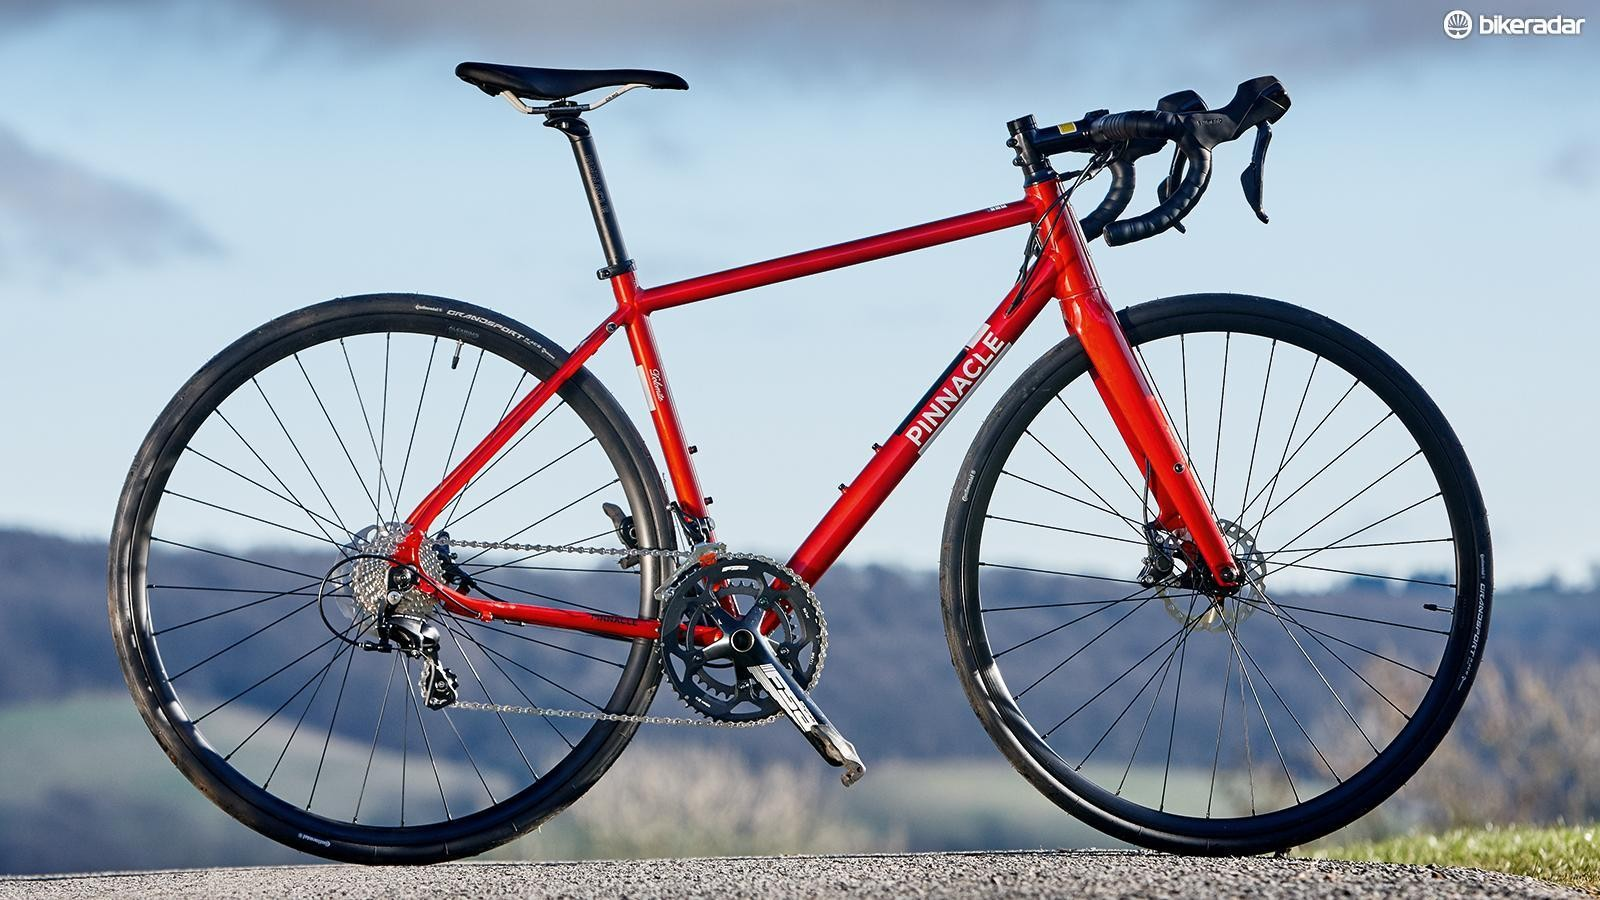 The Pinnacle Dolomite Five is one affordable road bike with proper hydraulic discs